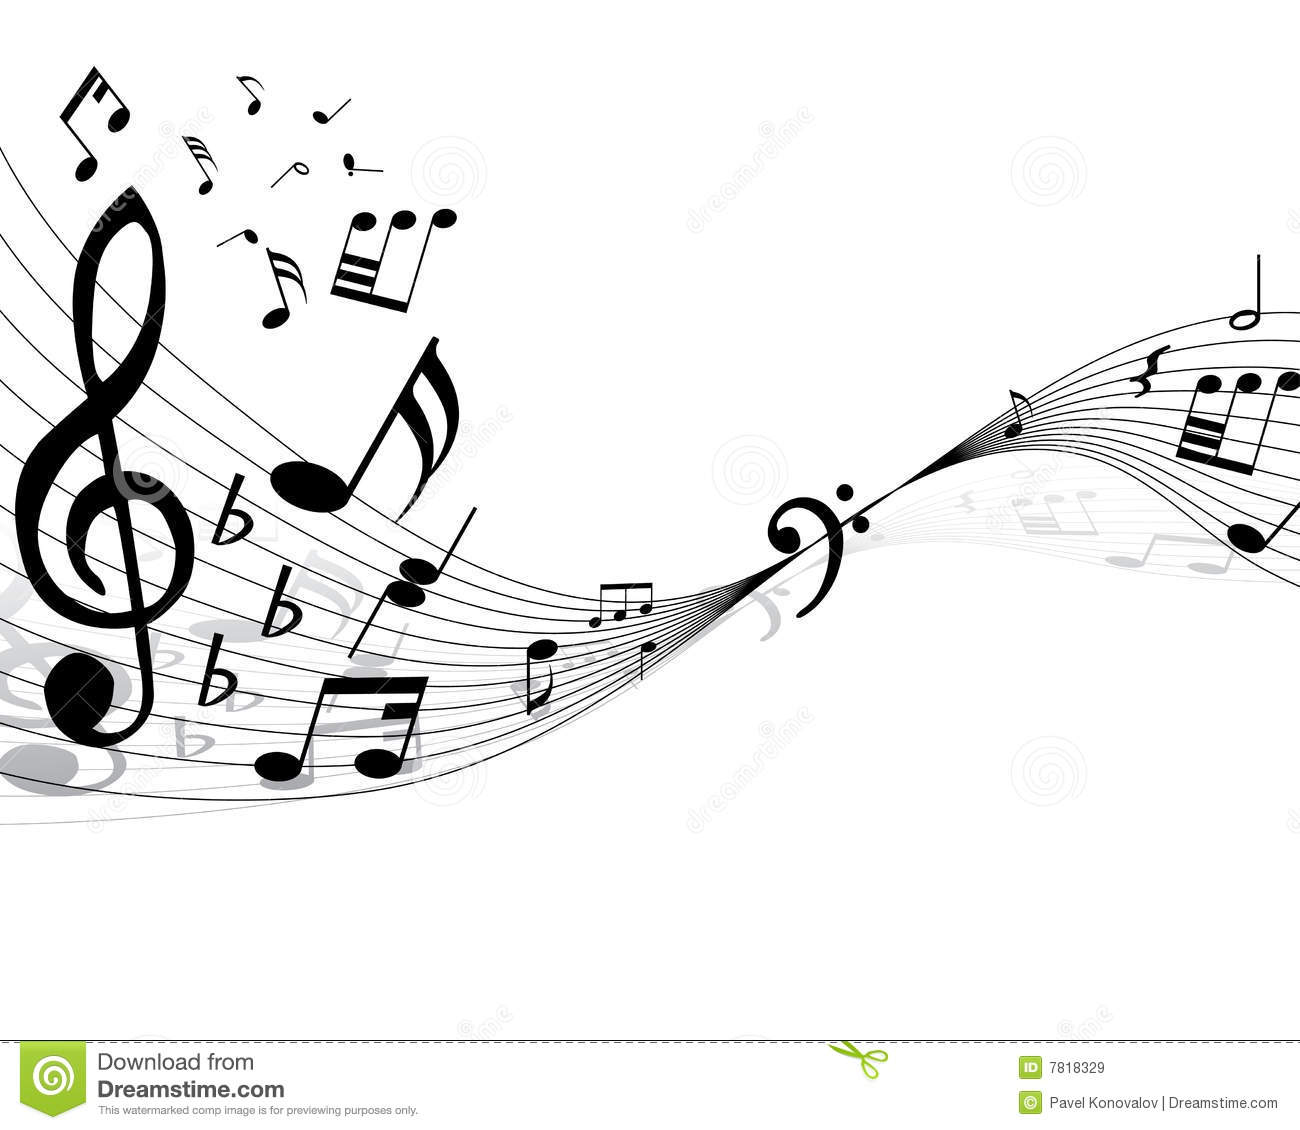 Musical staff stock vector. Image of lines, curves, minims